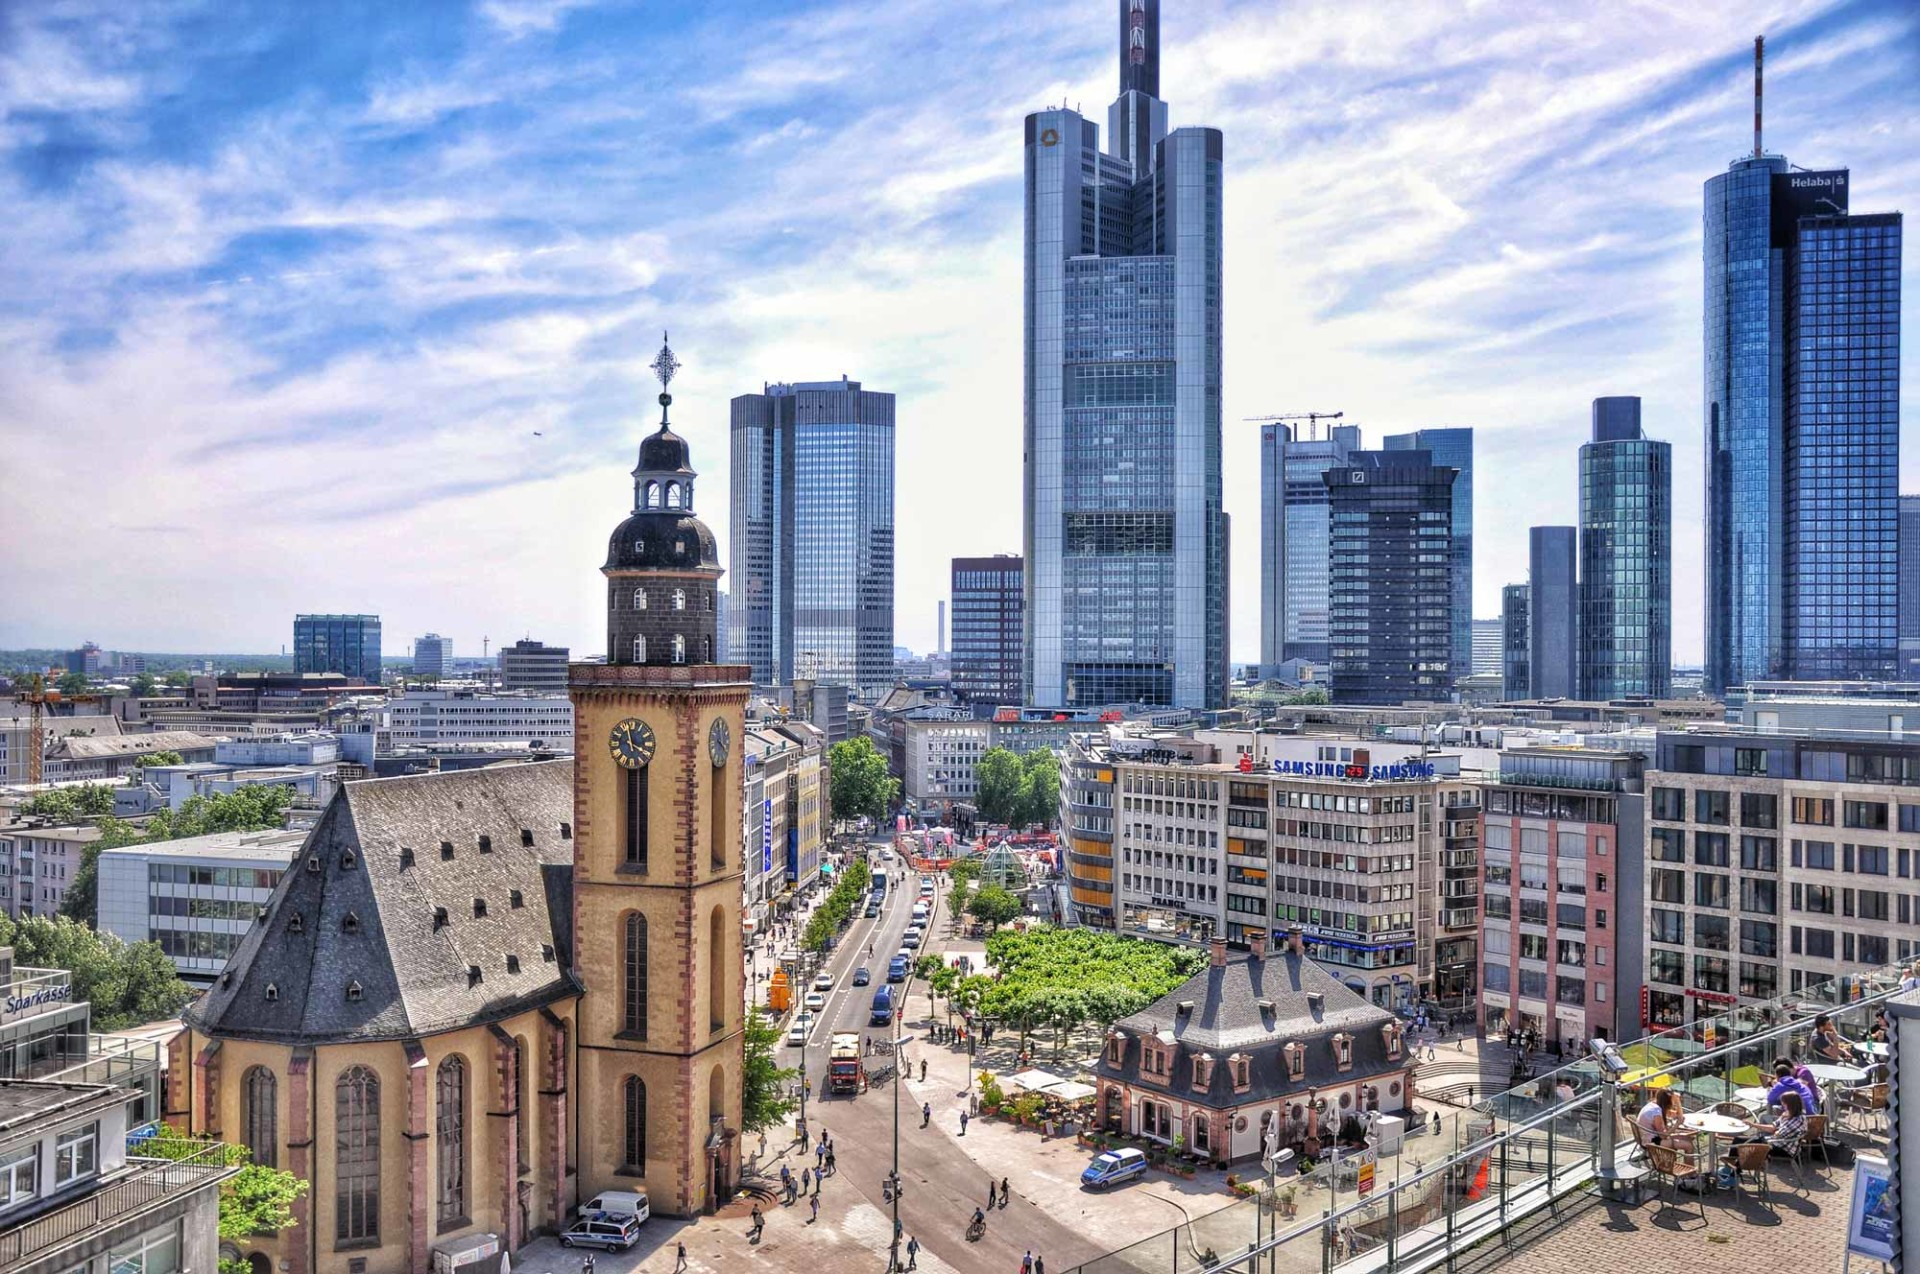 The past, present and future in Frankfurt